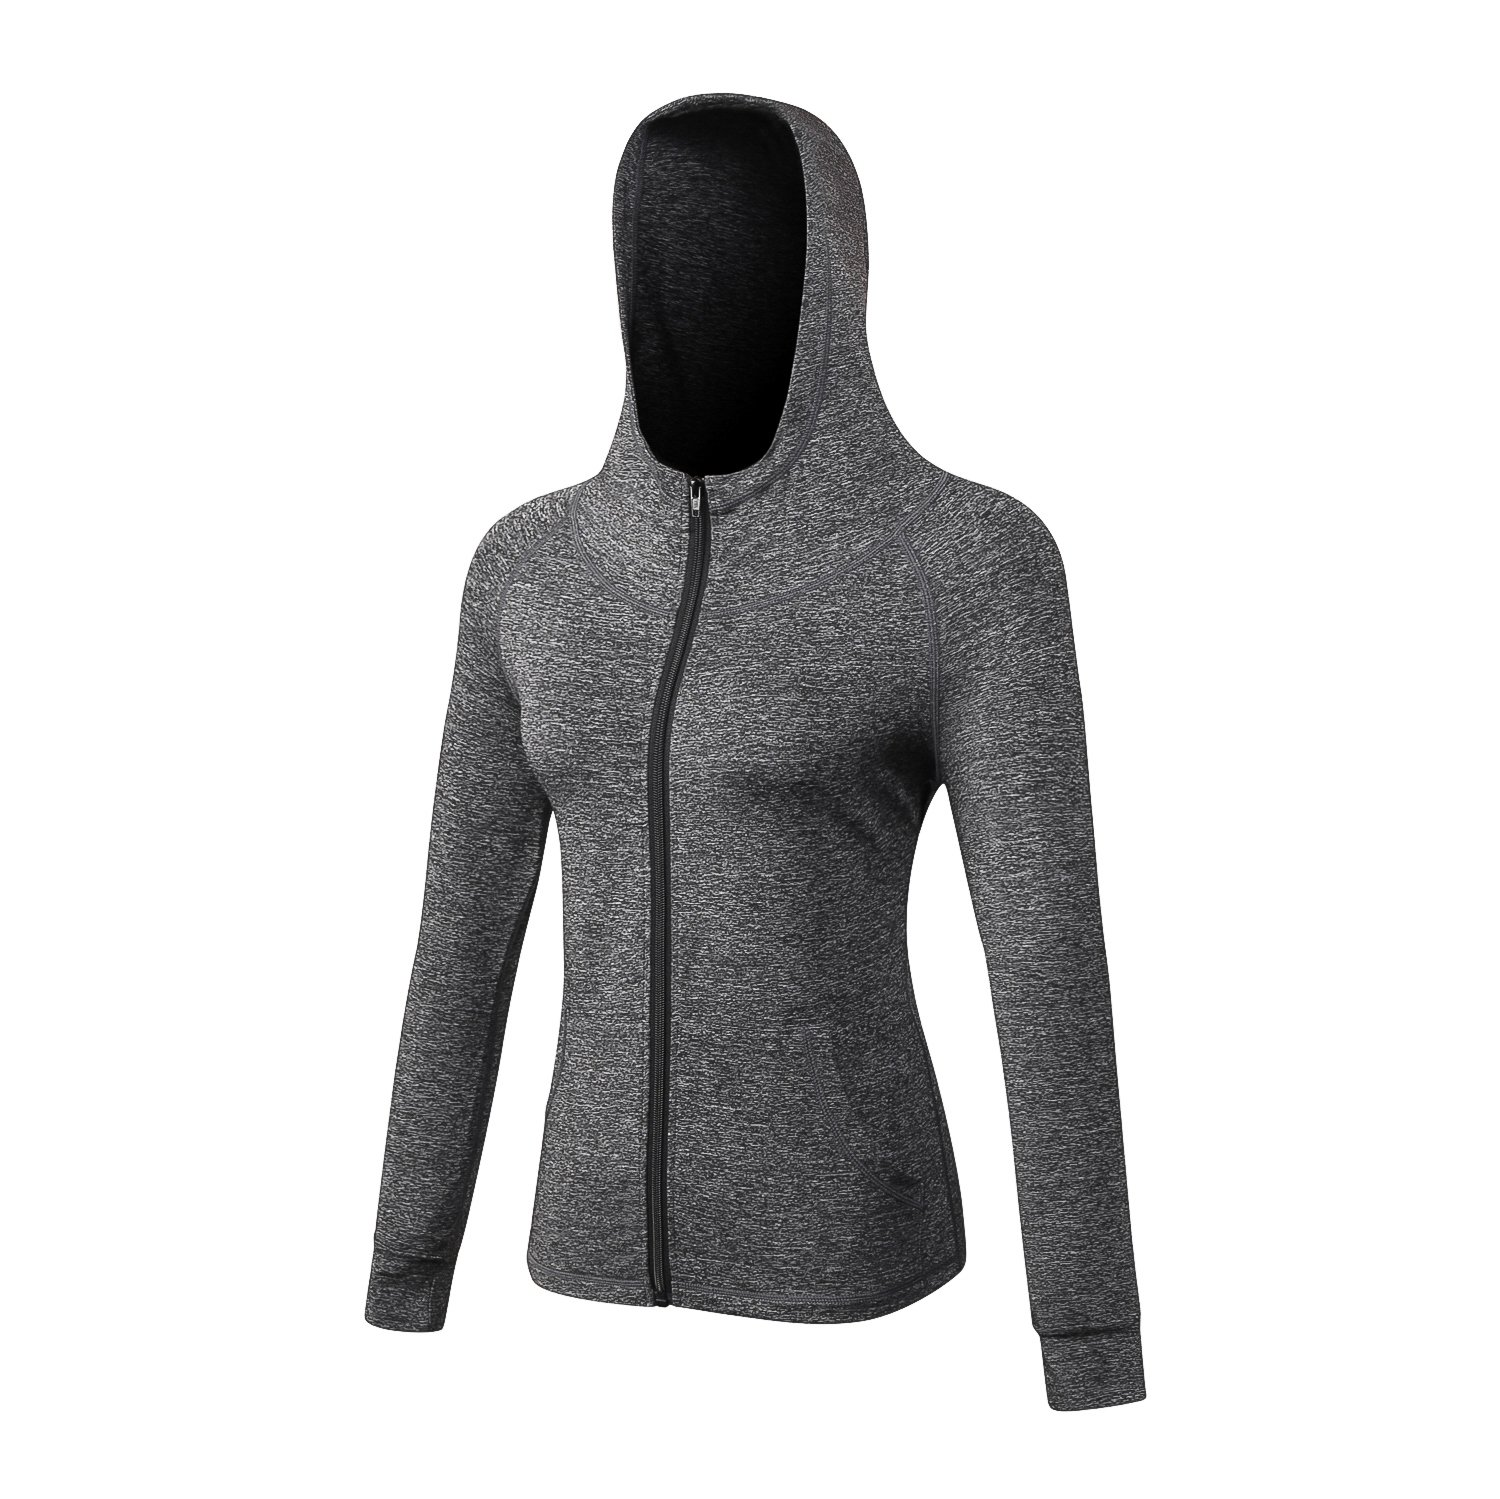 Women's Sports Active Jacket with Front Pockets - Hoodie Style camgo